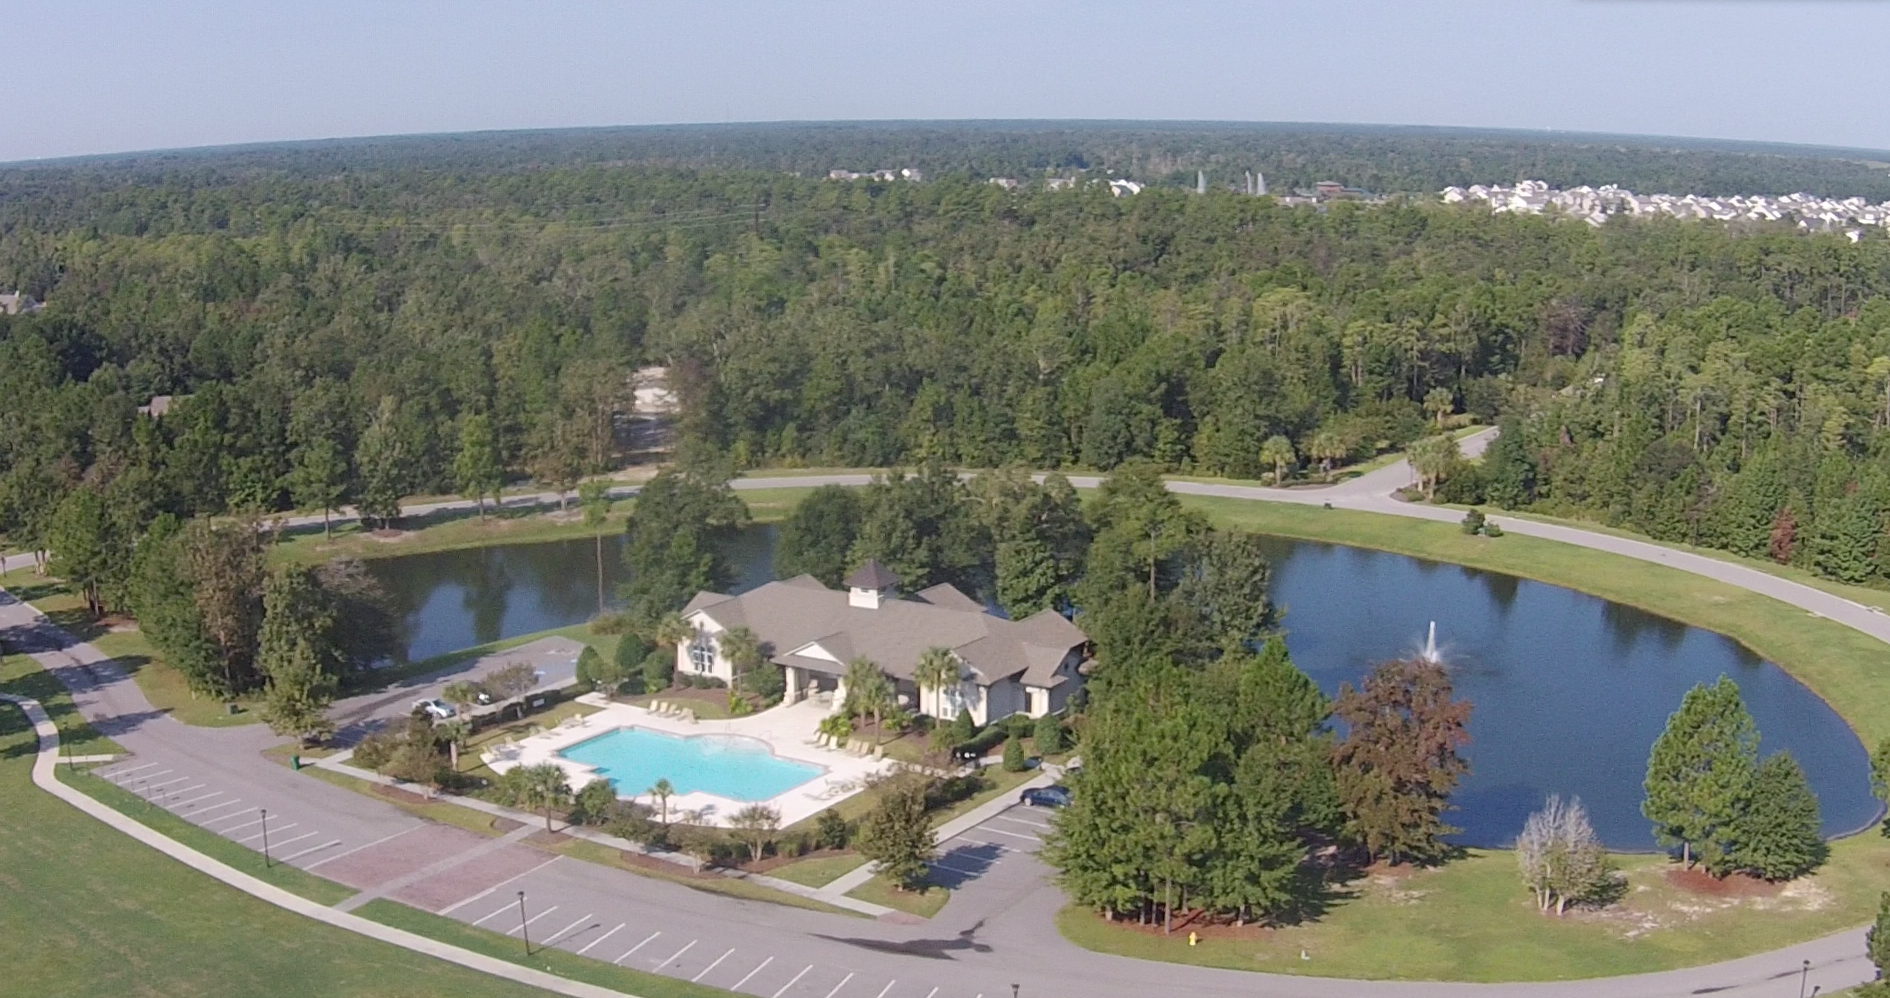 Copy of LS clubhouse aerial.png